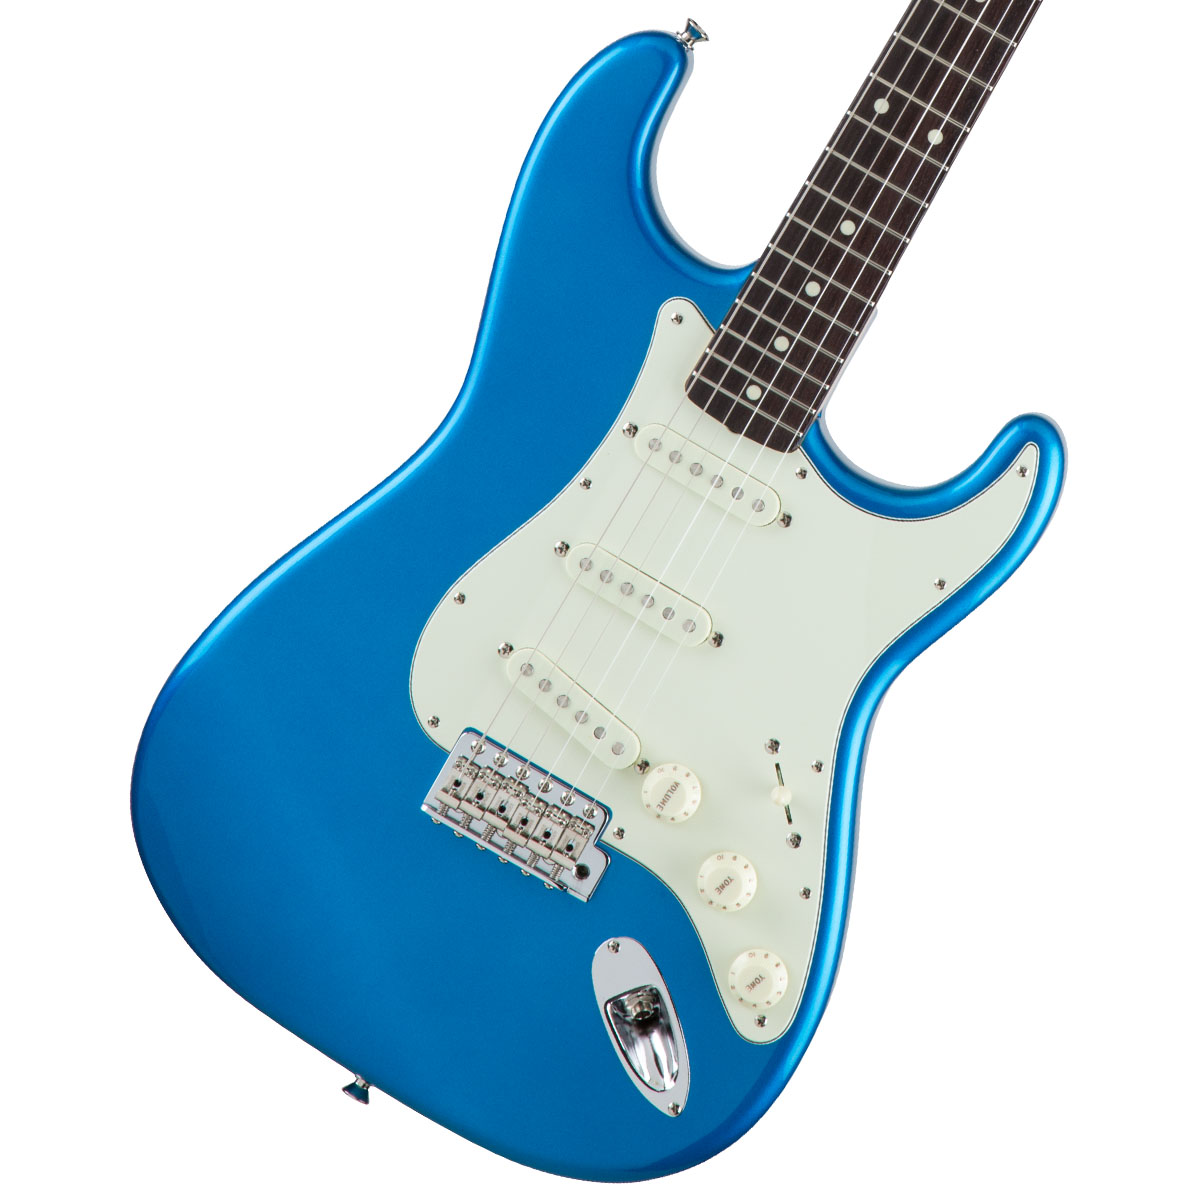 Fender / Made in Japan Traditional 60s Stratocaster Rosewood Fingerboard Candy Blue 【お取り寄せ商品】《カスタムショップのお手入れ用品を進呈/+671038200》【YRK】